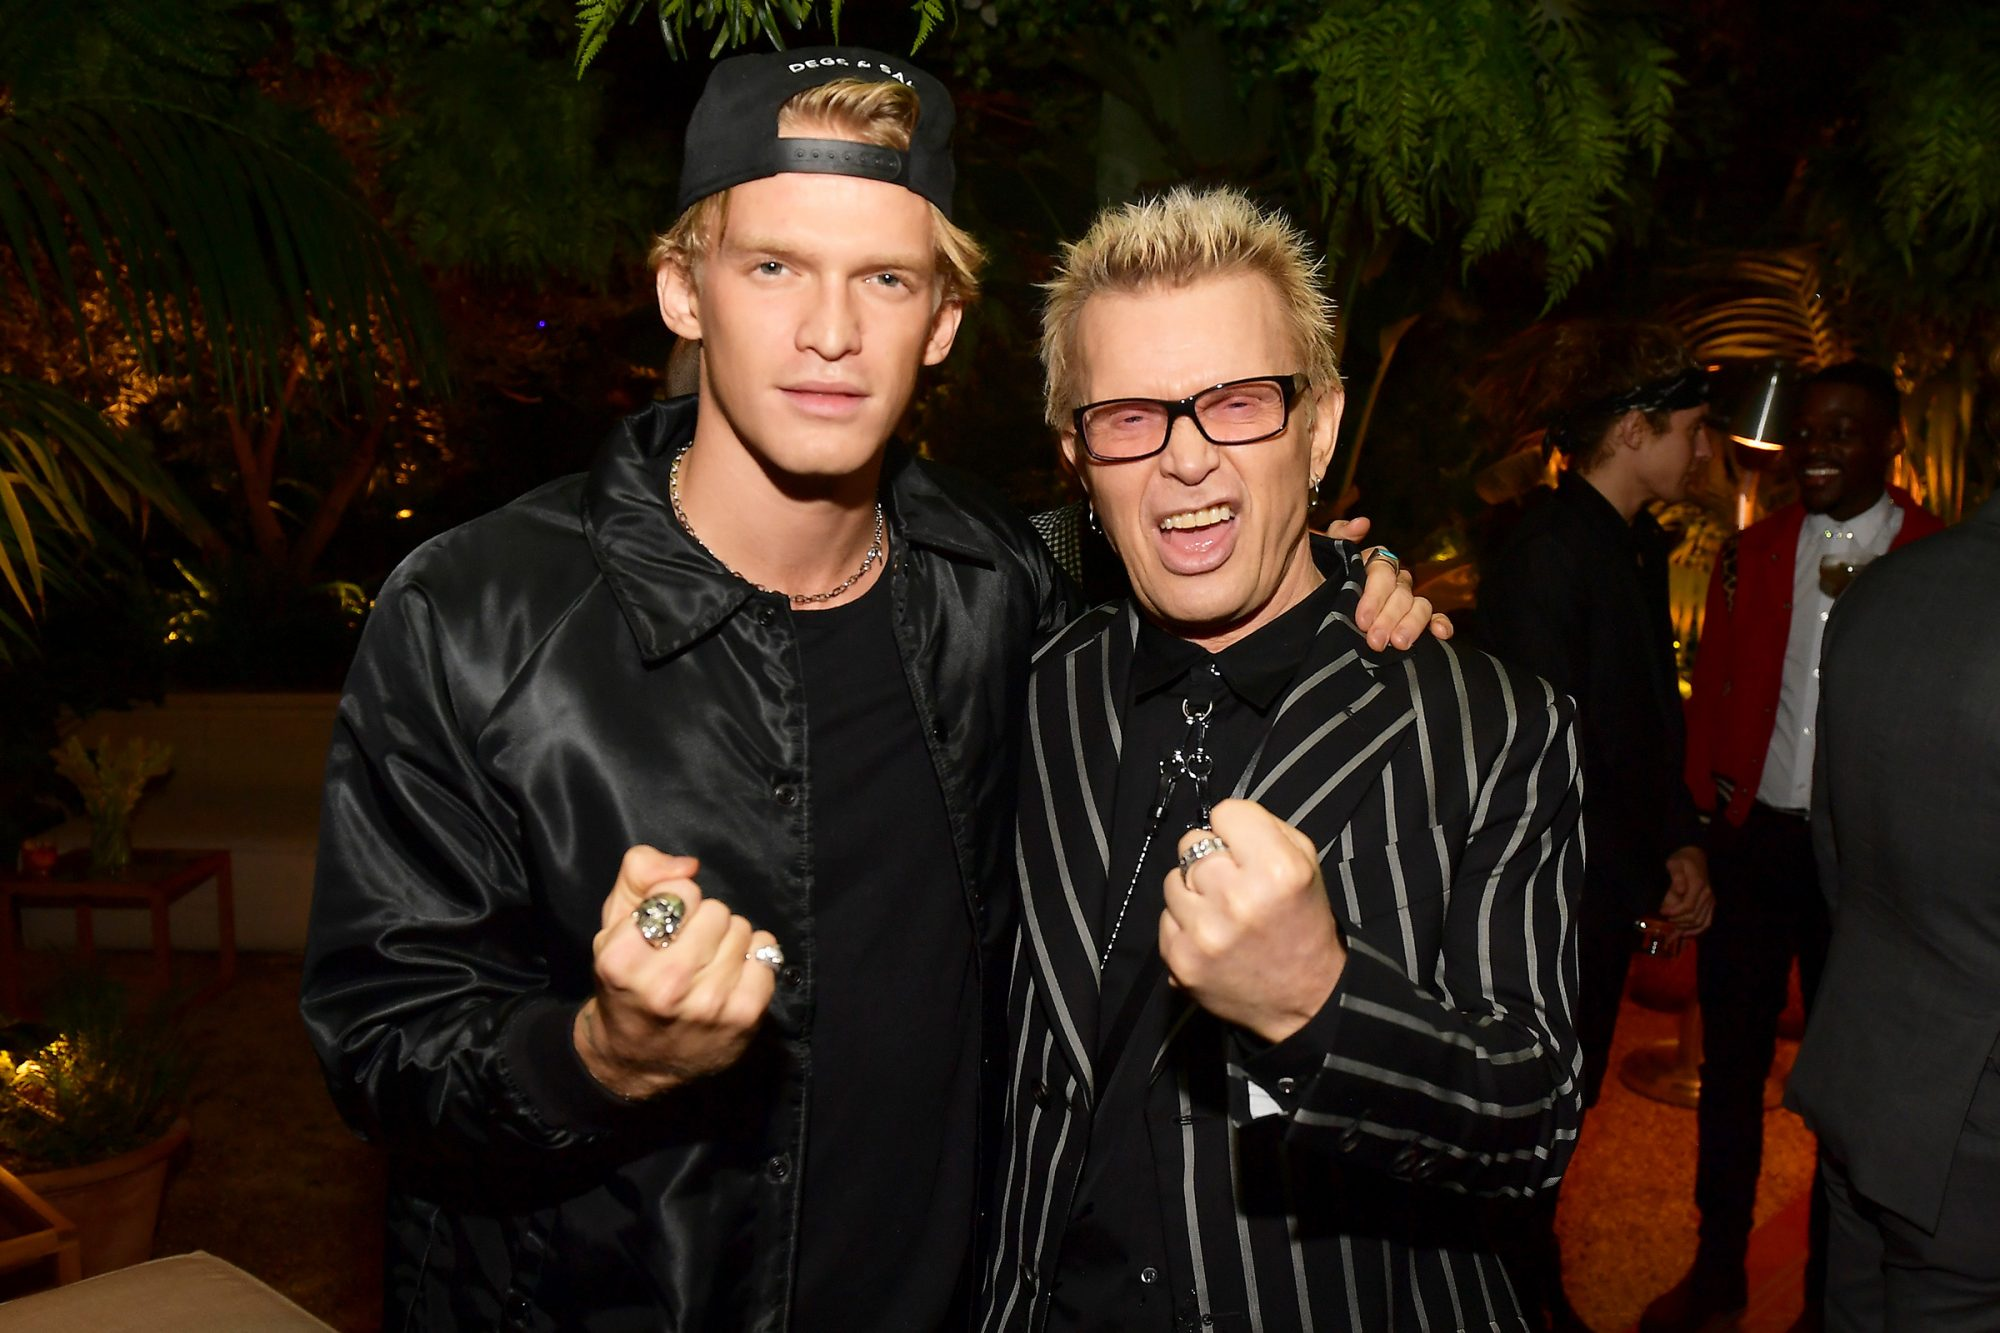 Cody Simpson and Billy Idol attend the 2019 GQ Men of the Year celebration at The West Hollywood EDITION on December 05, 2019 in West Hollywood, California